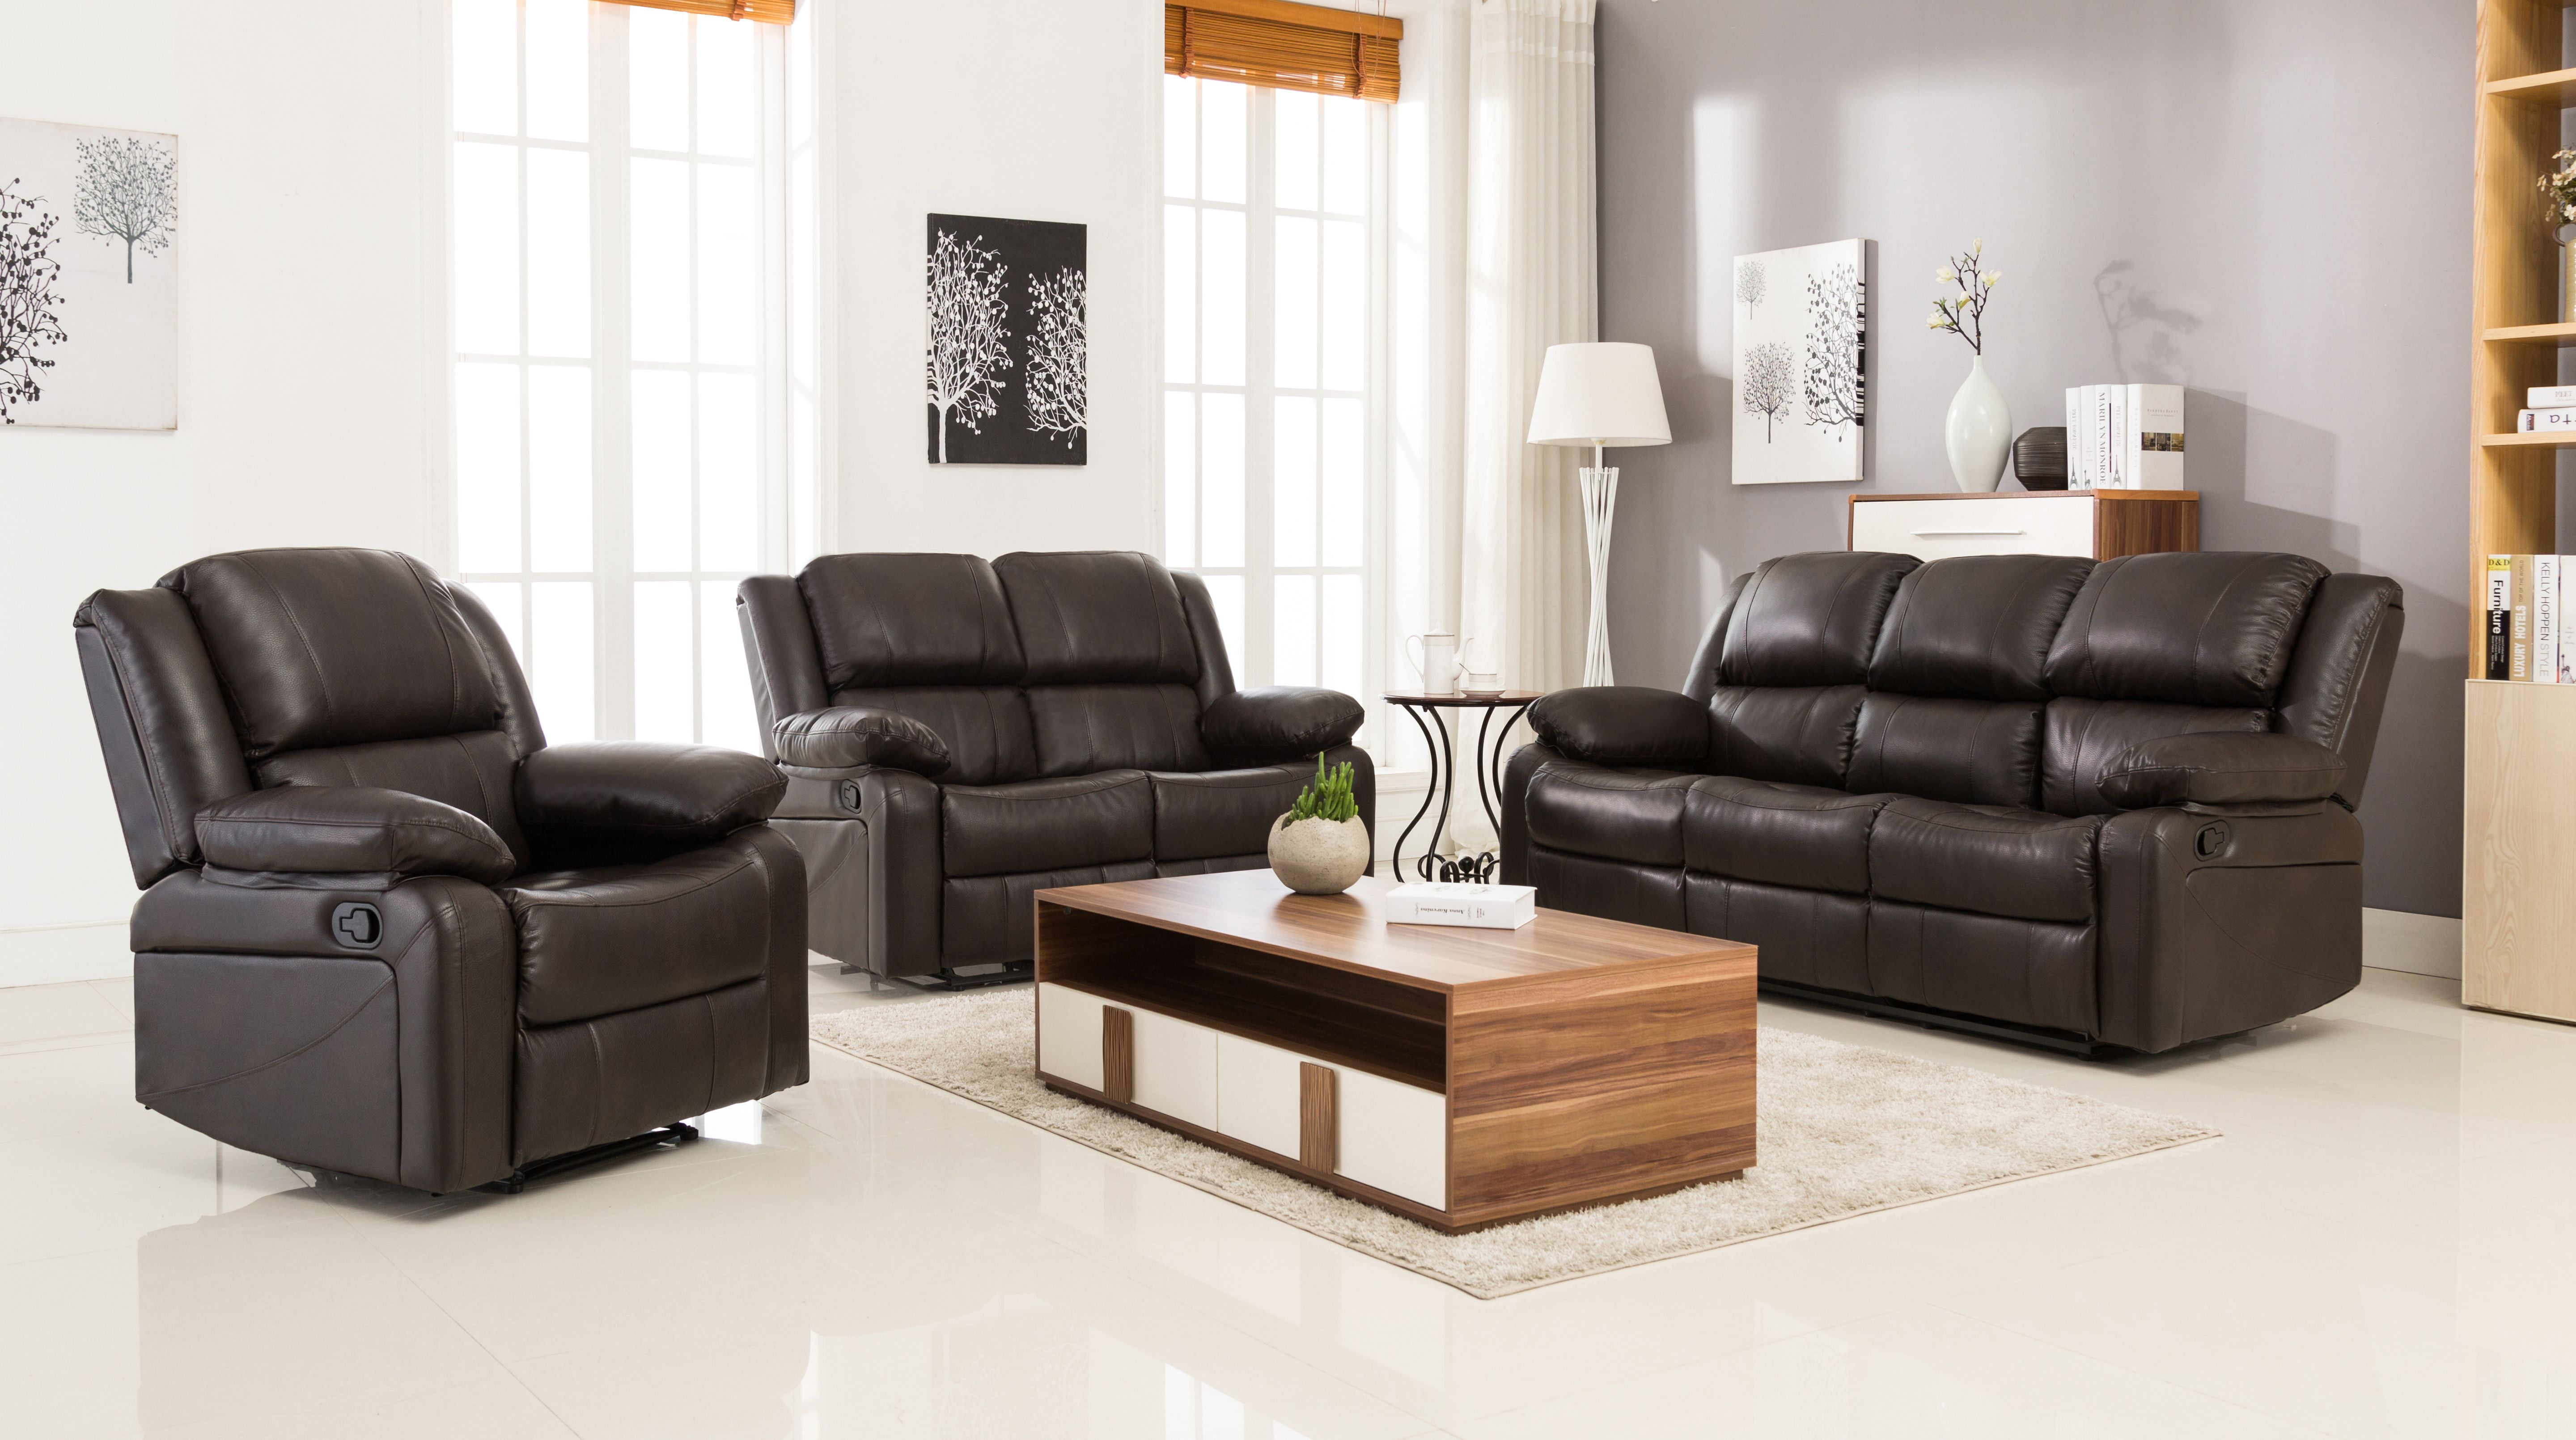 Surprising The Kara Air Leather Sofa Set Is A Strong Yet Classic Set Machost Co Dining Chair Design Ideas Machostcouk